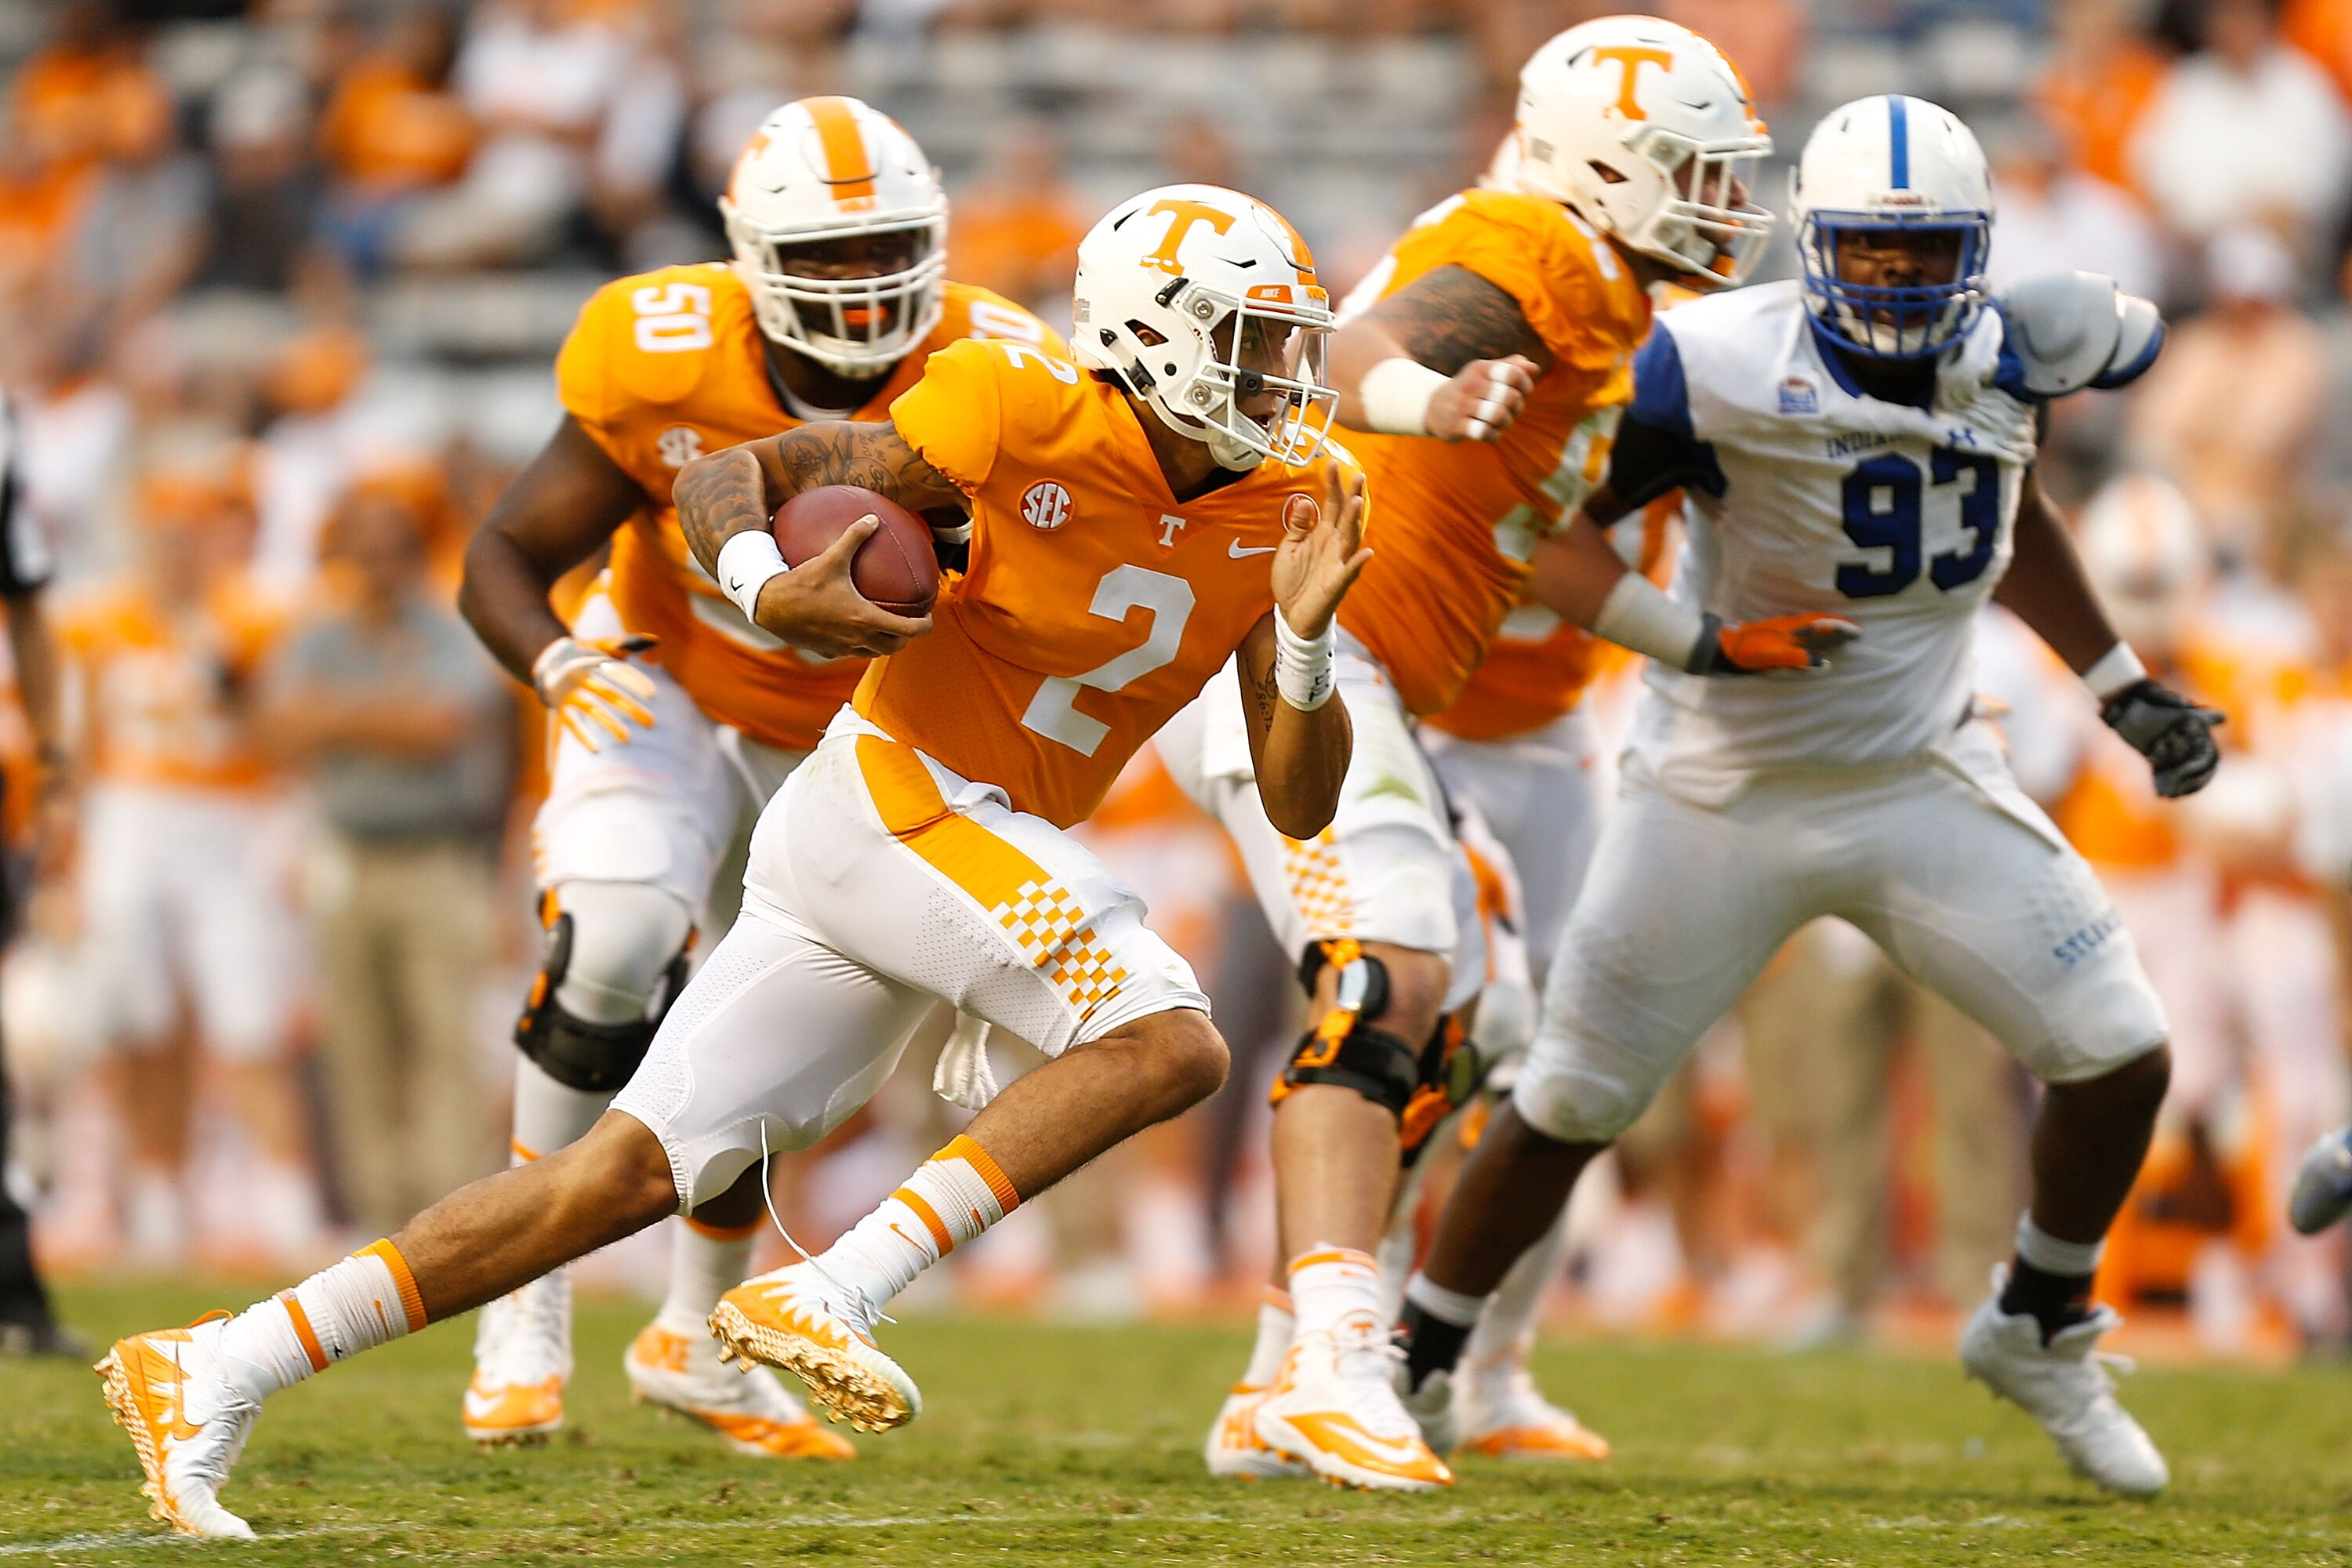 845039422-indiana-state-v-tennessee.jpg